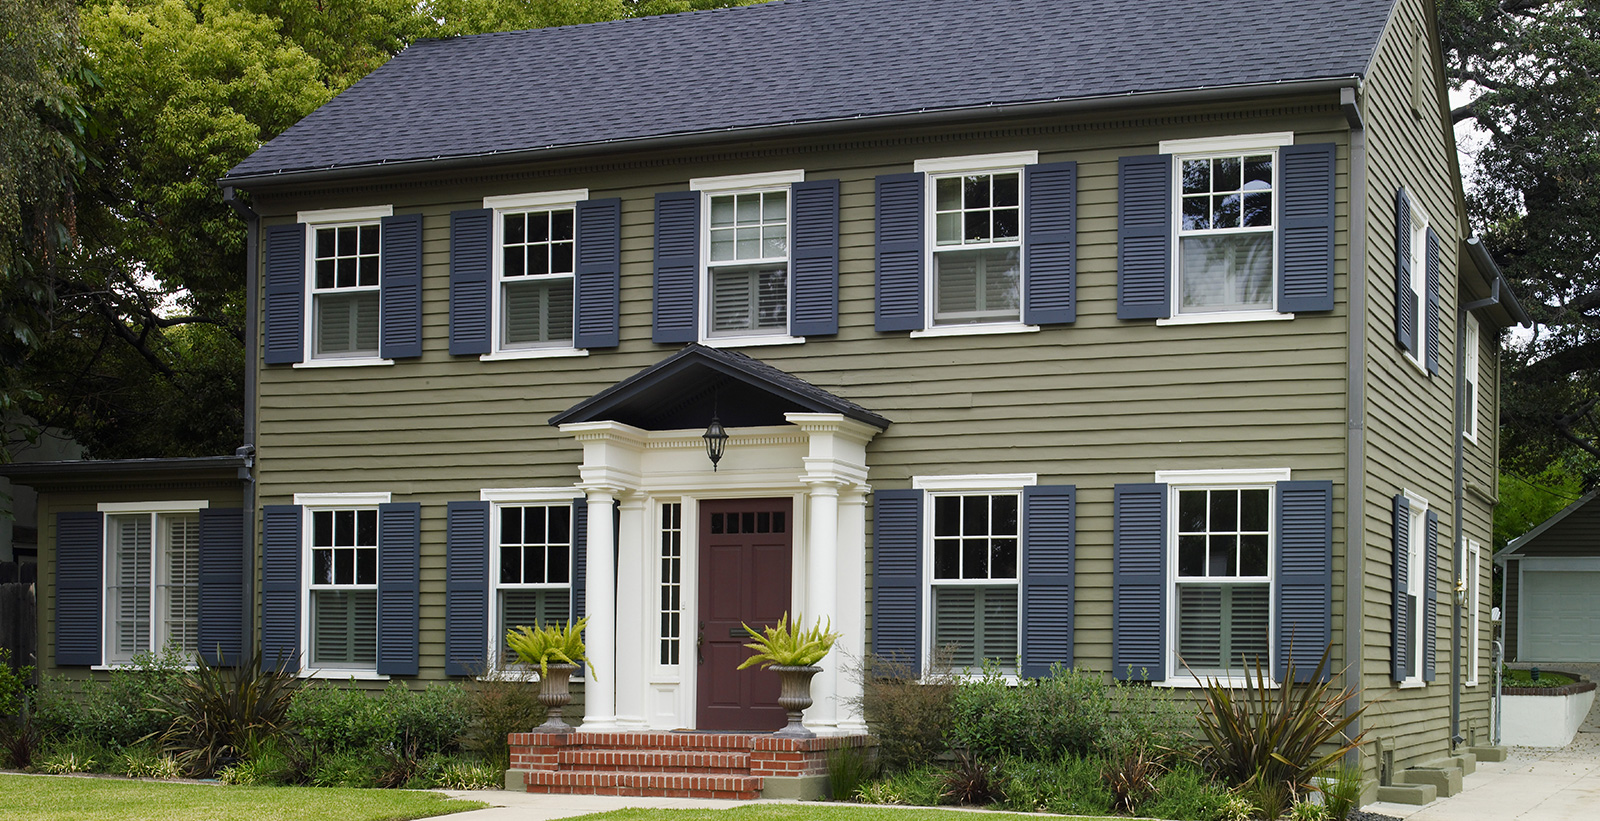 Colonial themed house with green walls, white trim, blue shutters and red door.